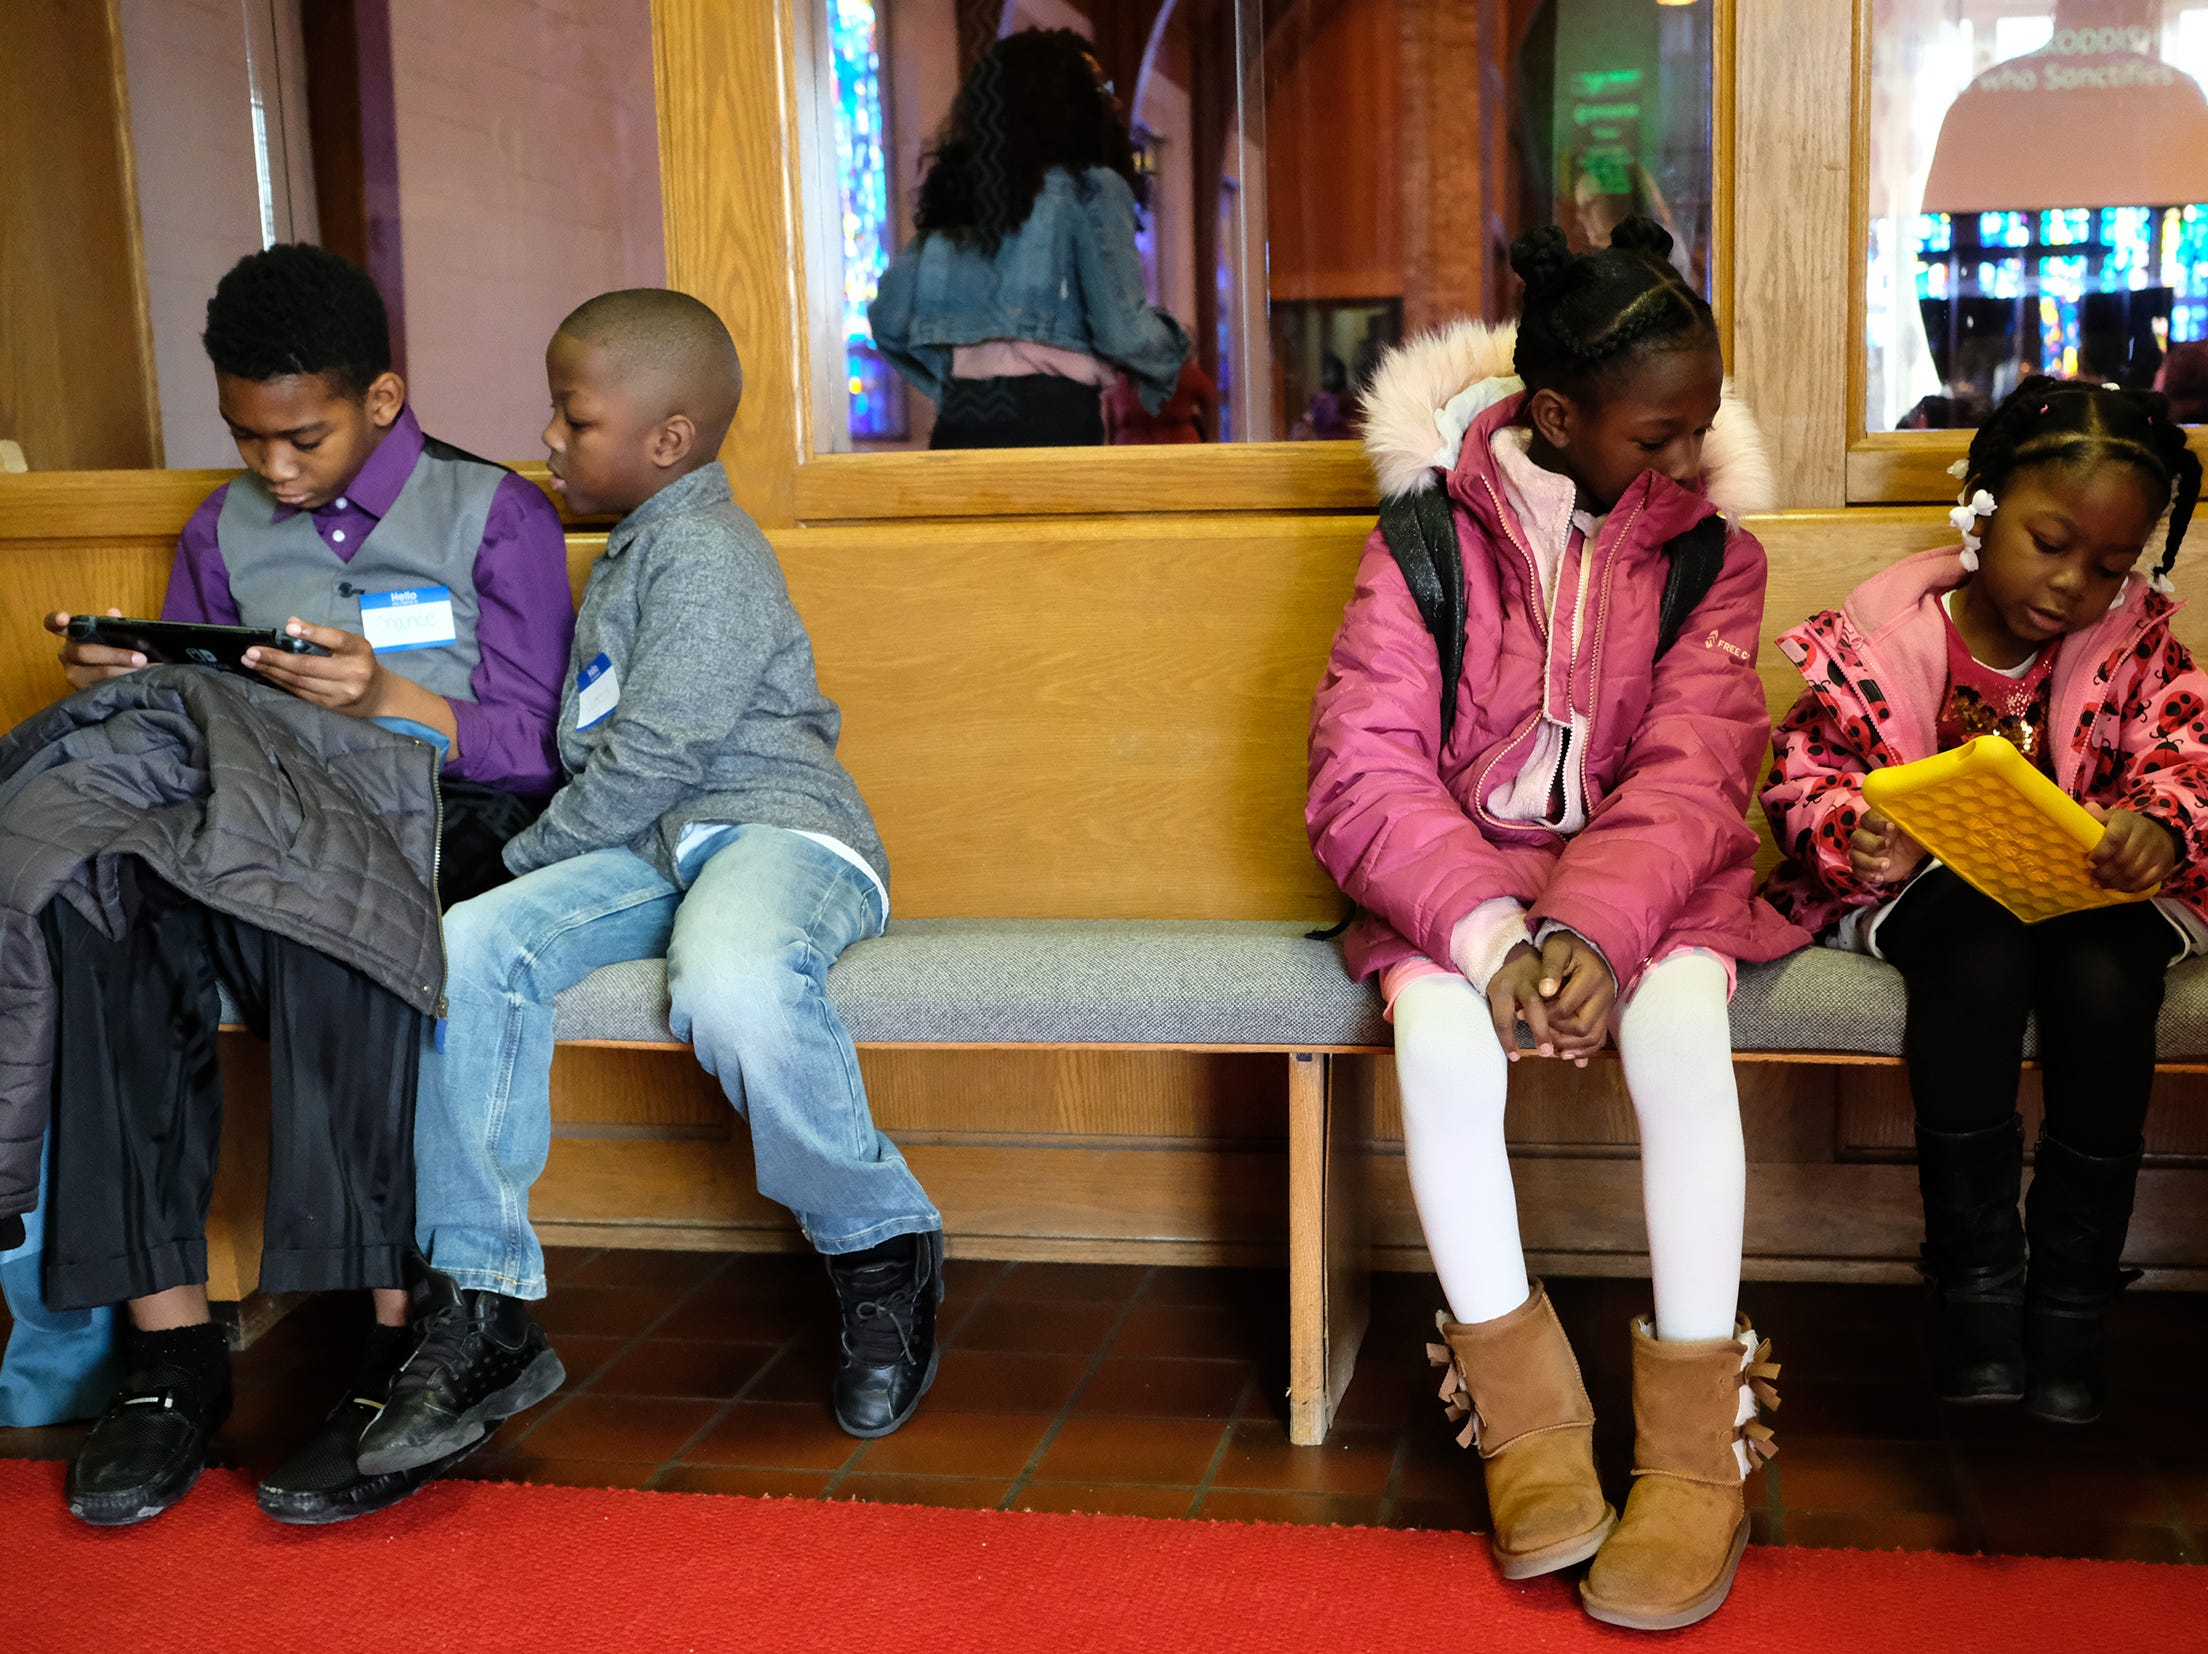 Kids have fun with tablets before services start at Epicenter of Worship Church Sunday, Jan. 20, 2019.